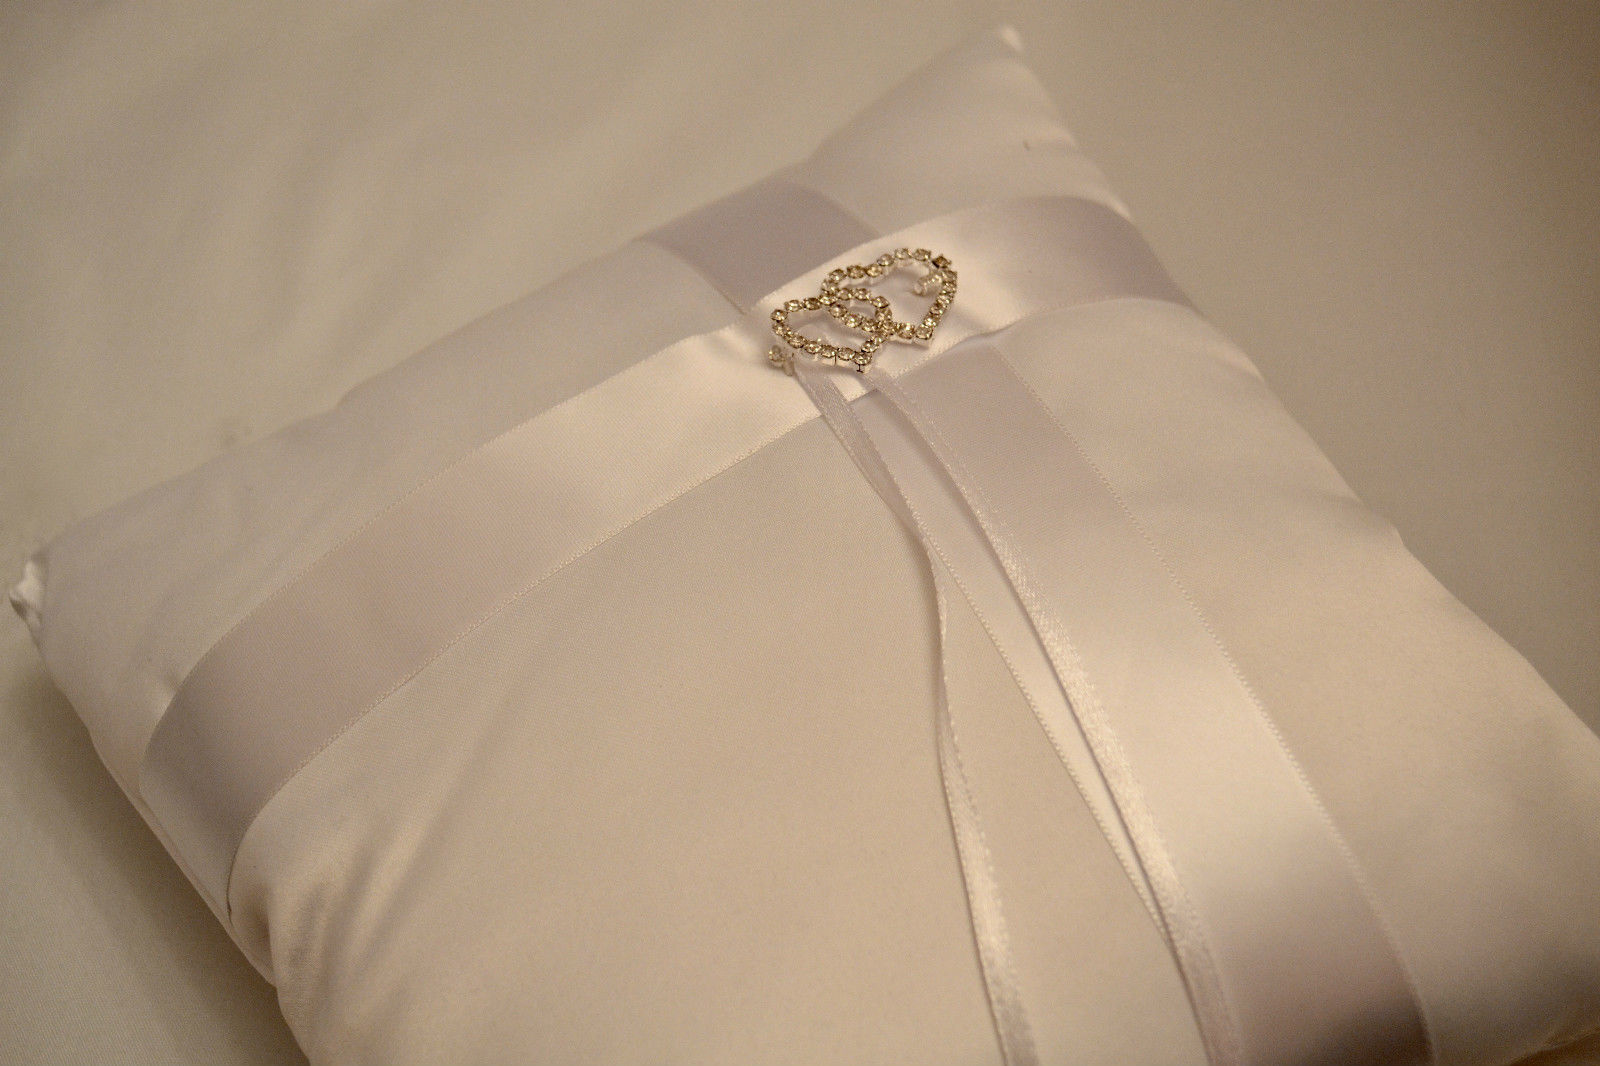 wedding ring cushion pillow 19x19cm with small